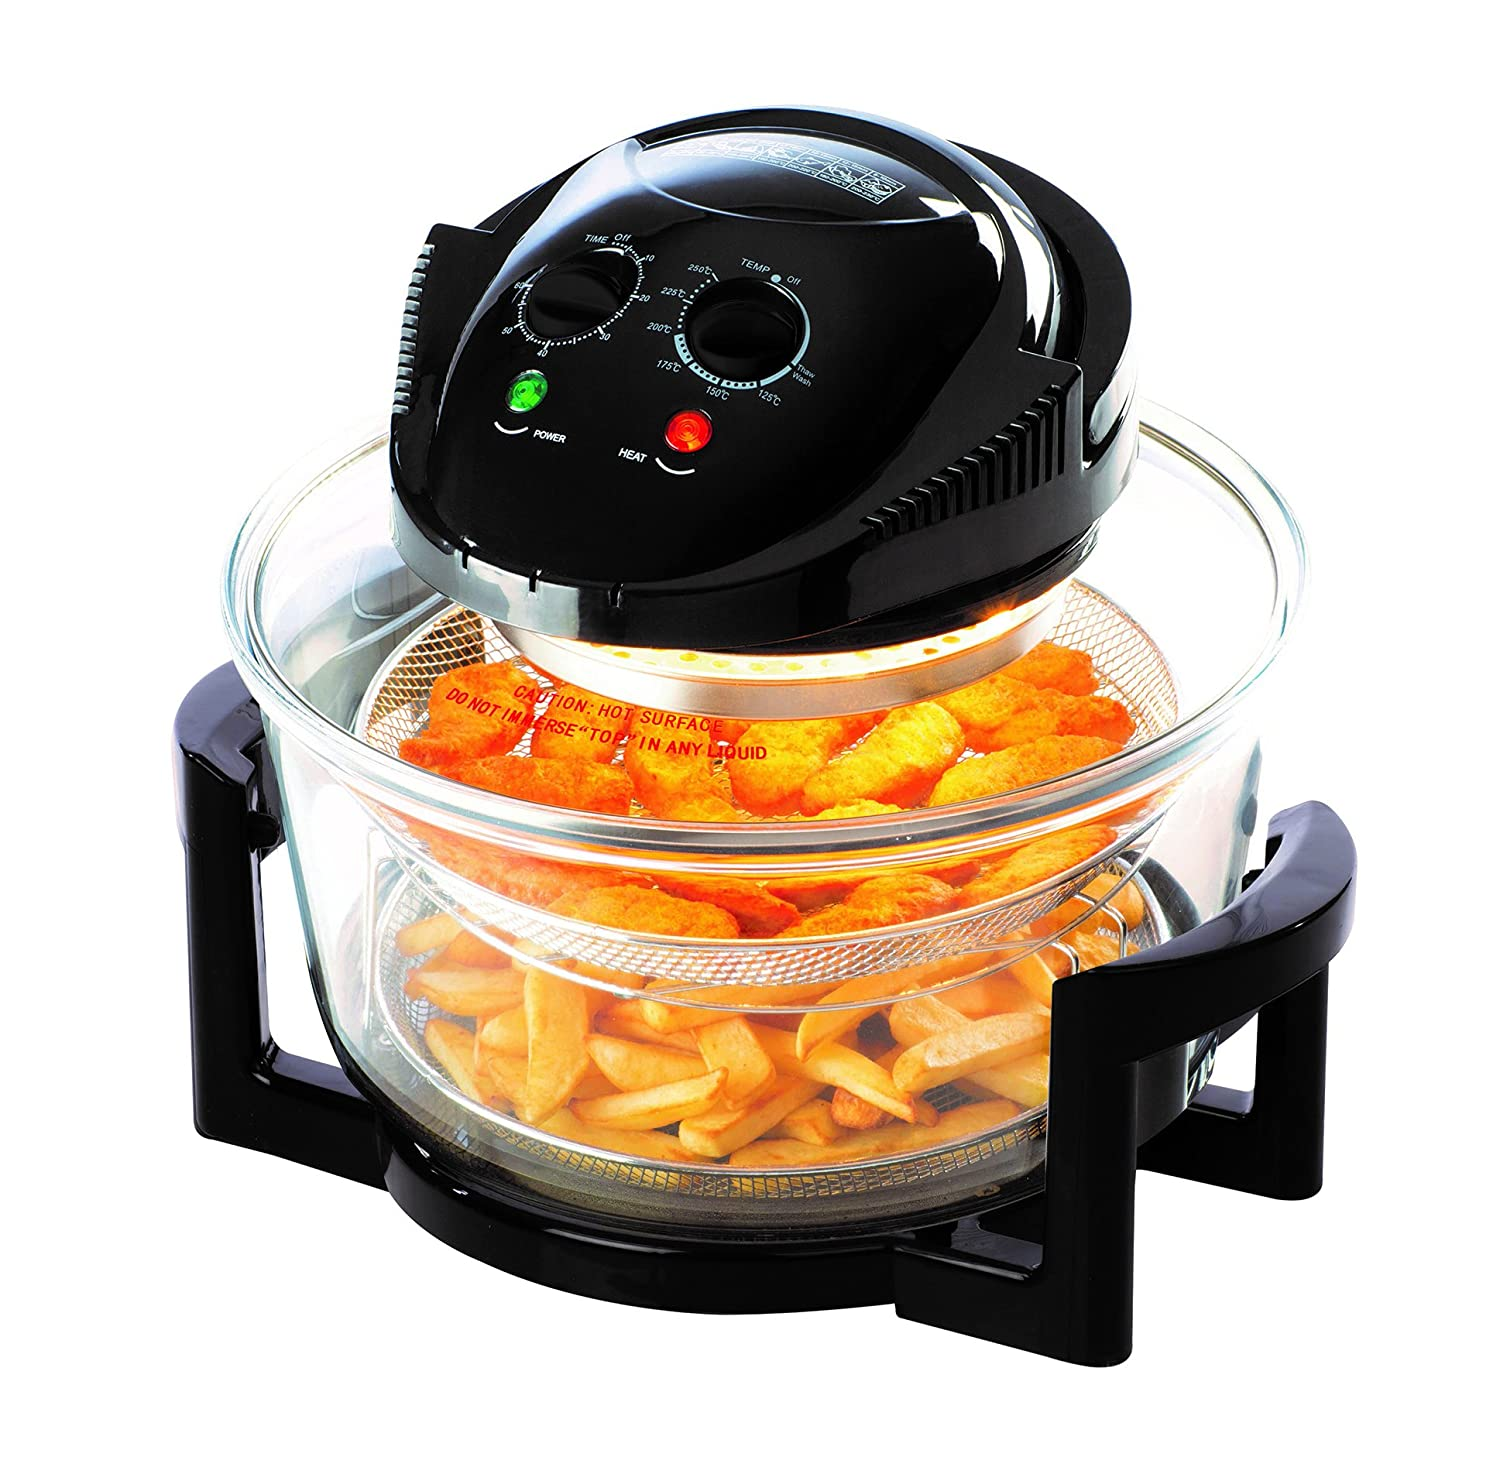 daewoo air fryer deluxe halogen oven review health fryer. Black Bedroom Furniture Sets. Home Design Ideas